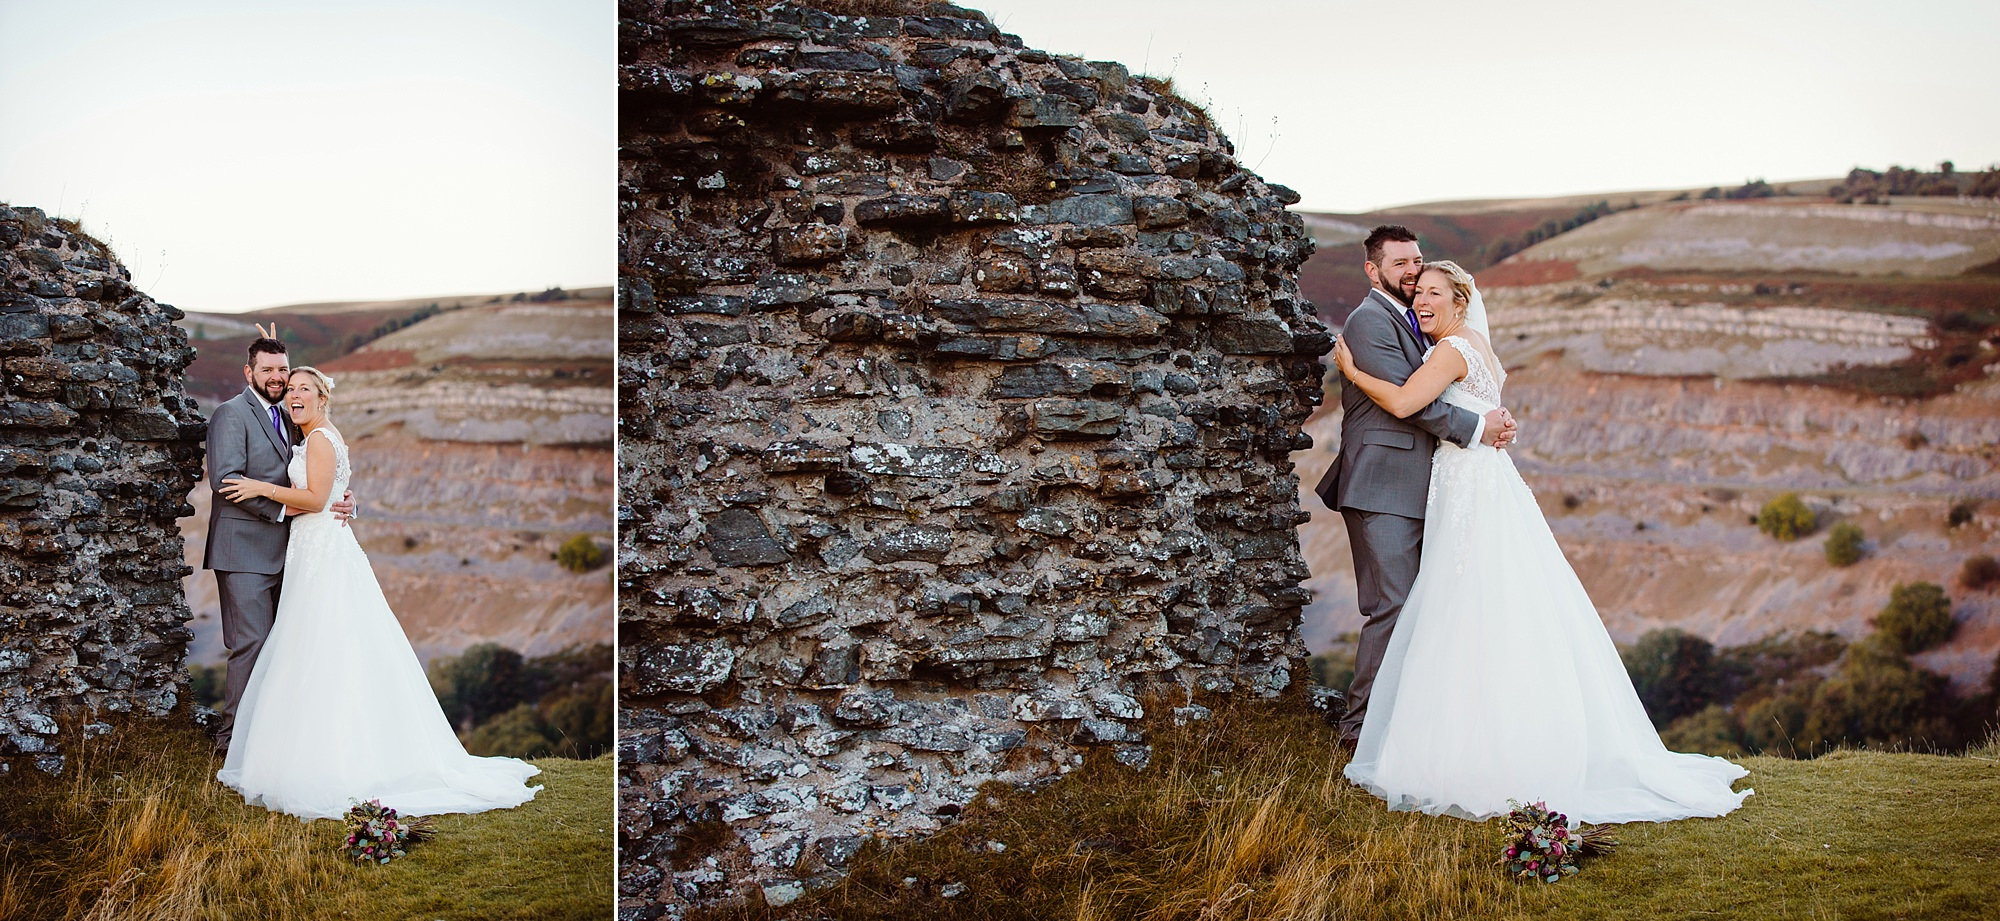 Castell dinas bran wedding photography fun portrait of bride laughing and giving bunny ears